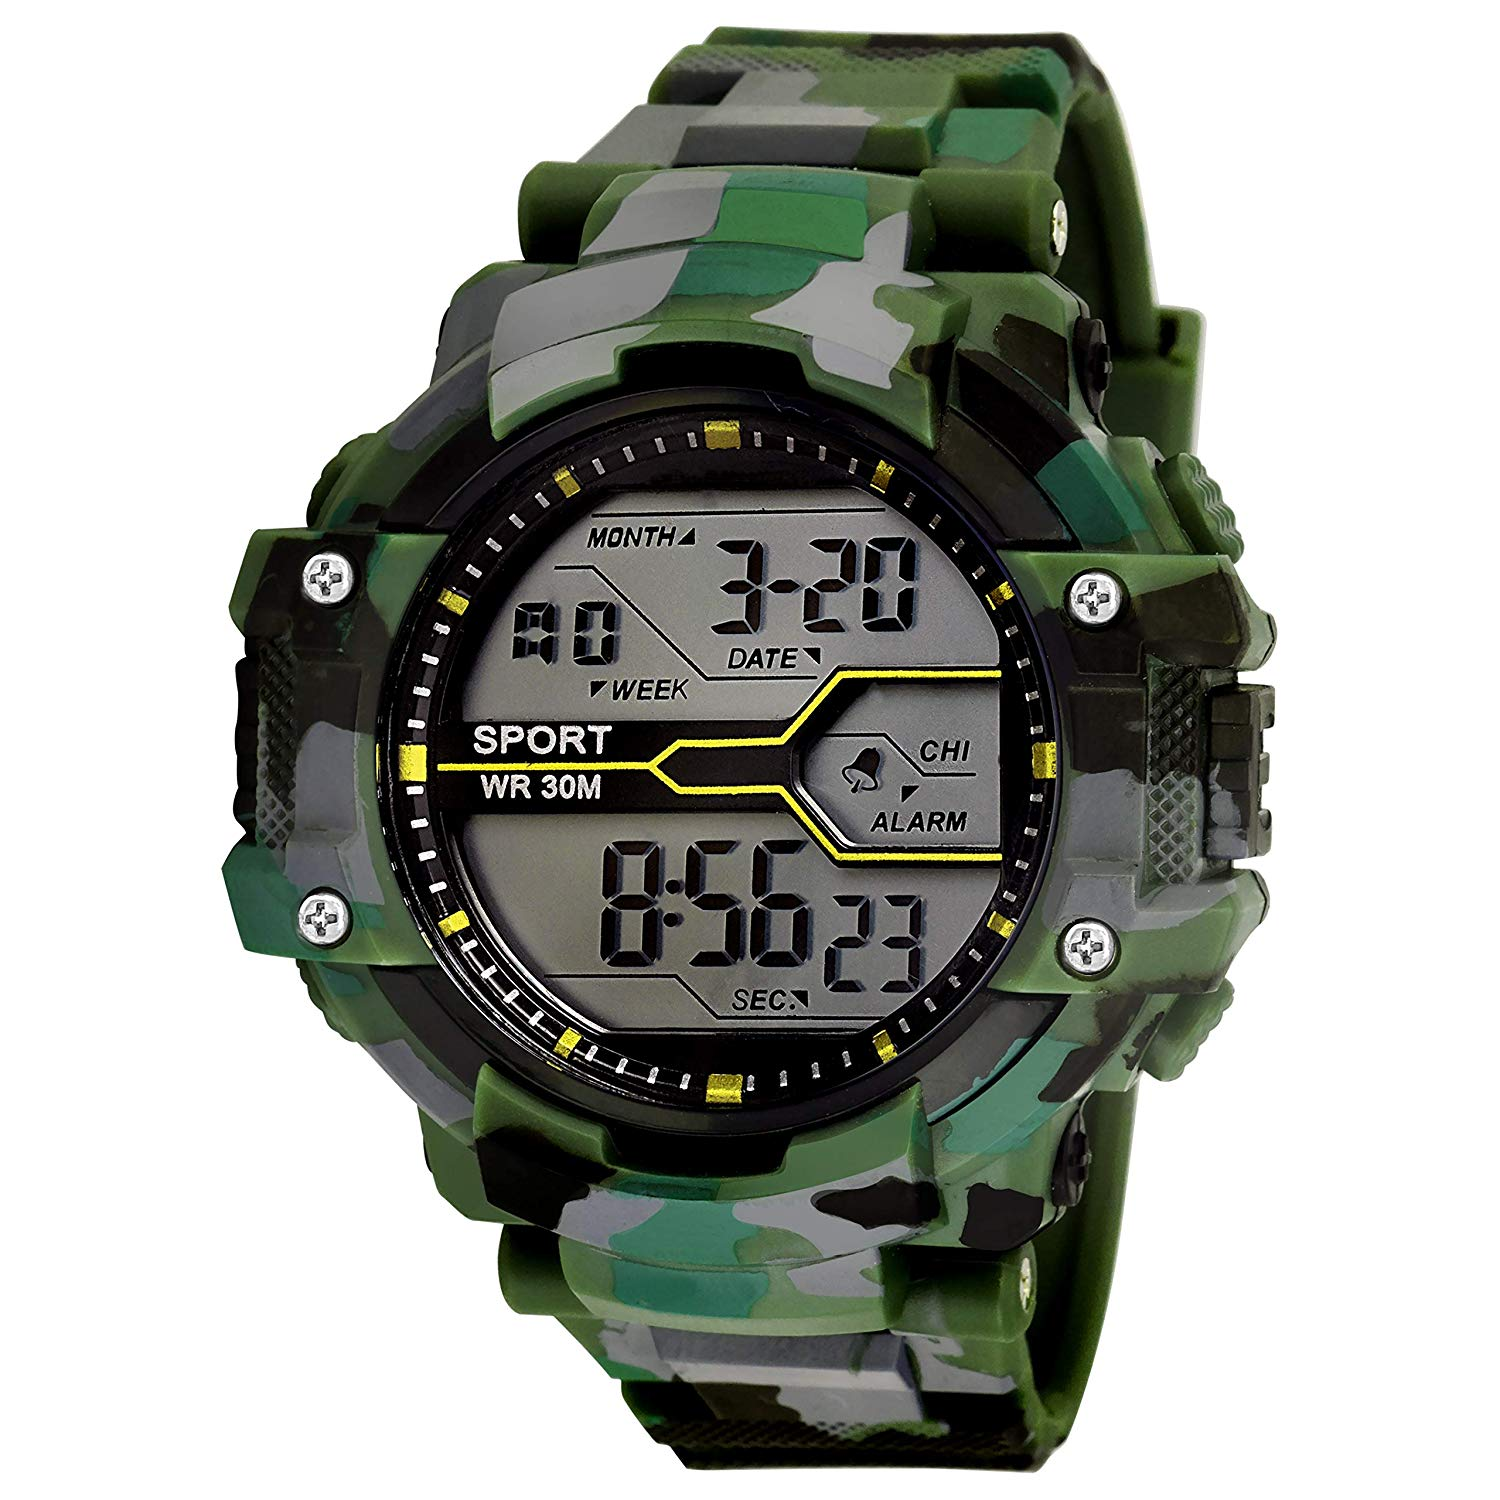 Lorenz Digital Multicolor Dial   Army Camouflage Green Strap Sports Watch for Men's   Boys | 3036 DG